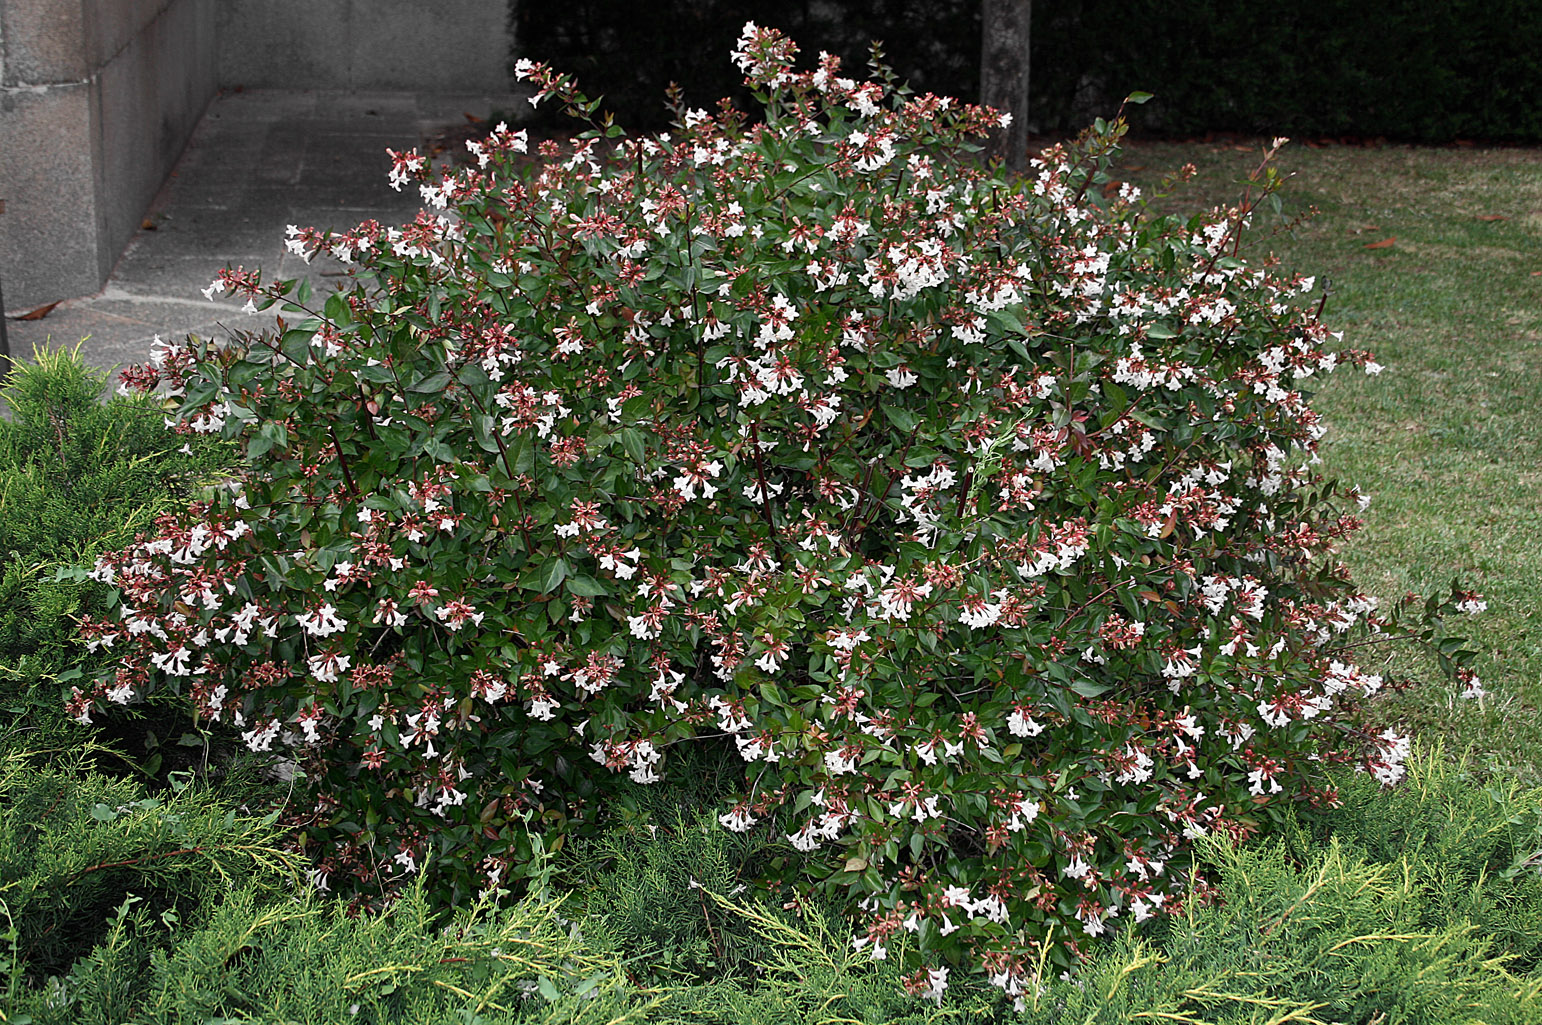 Appearance of the shrub in full bloom